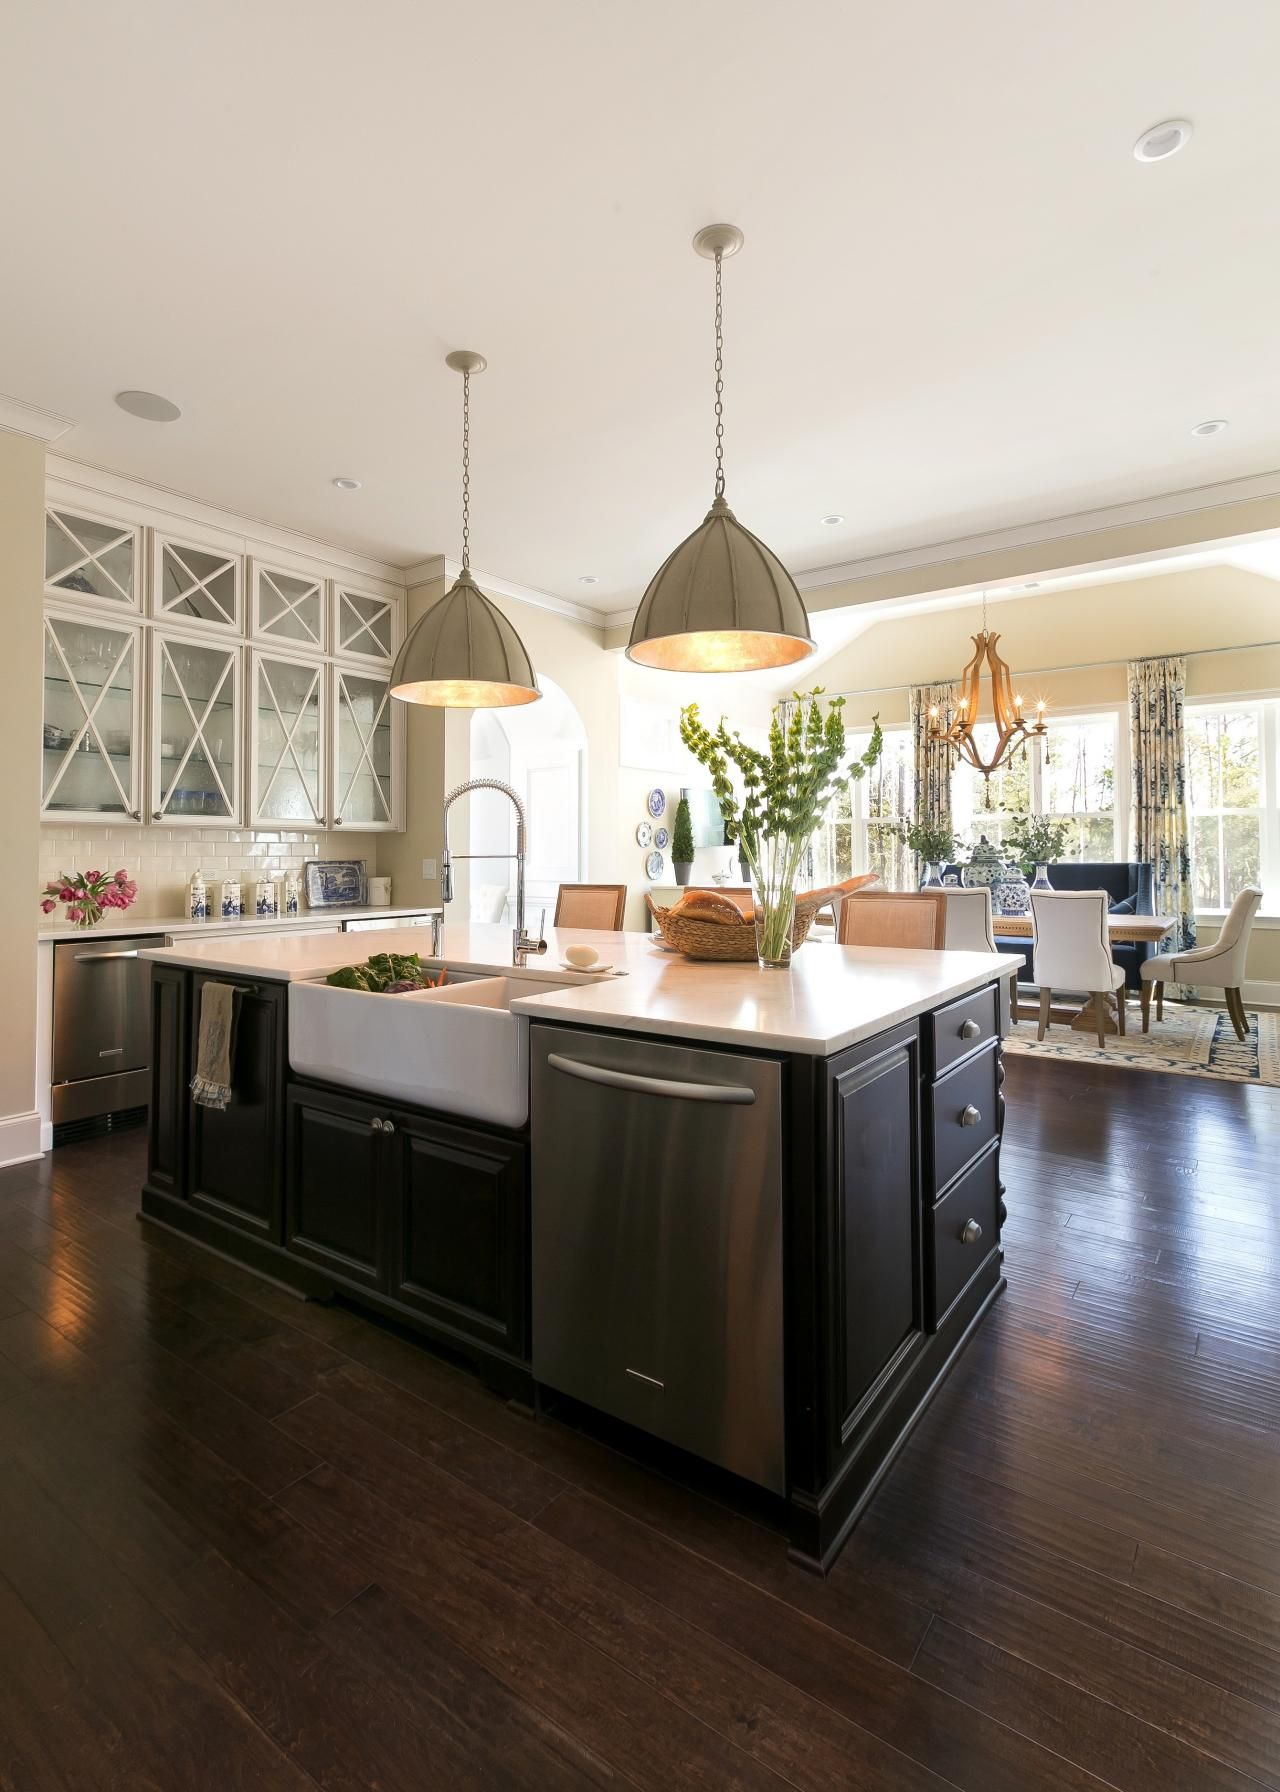 Open Concept From The Kitchen Island There Is A Clear Line Of